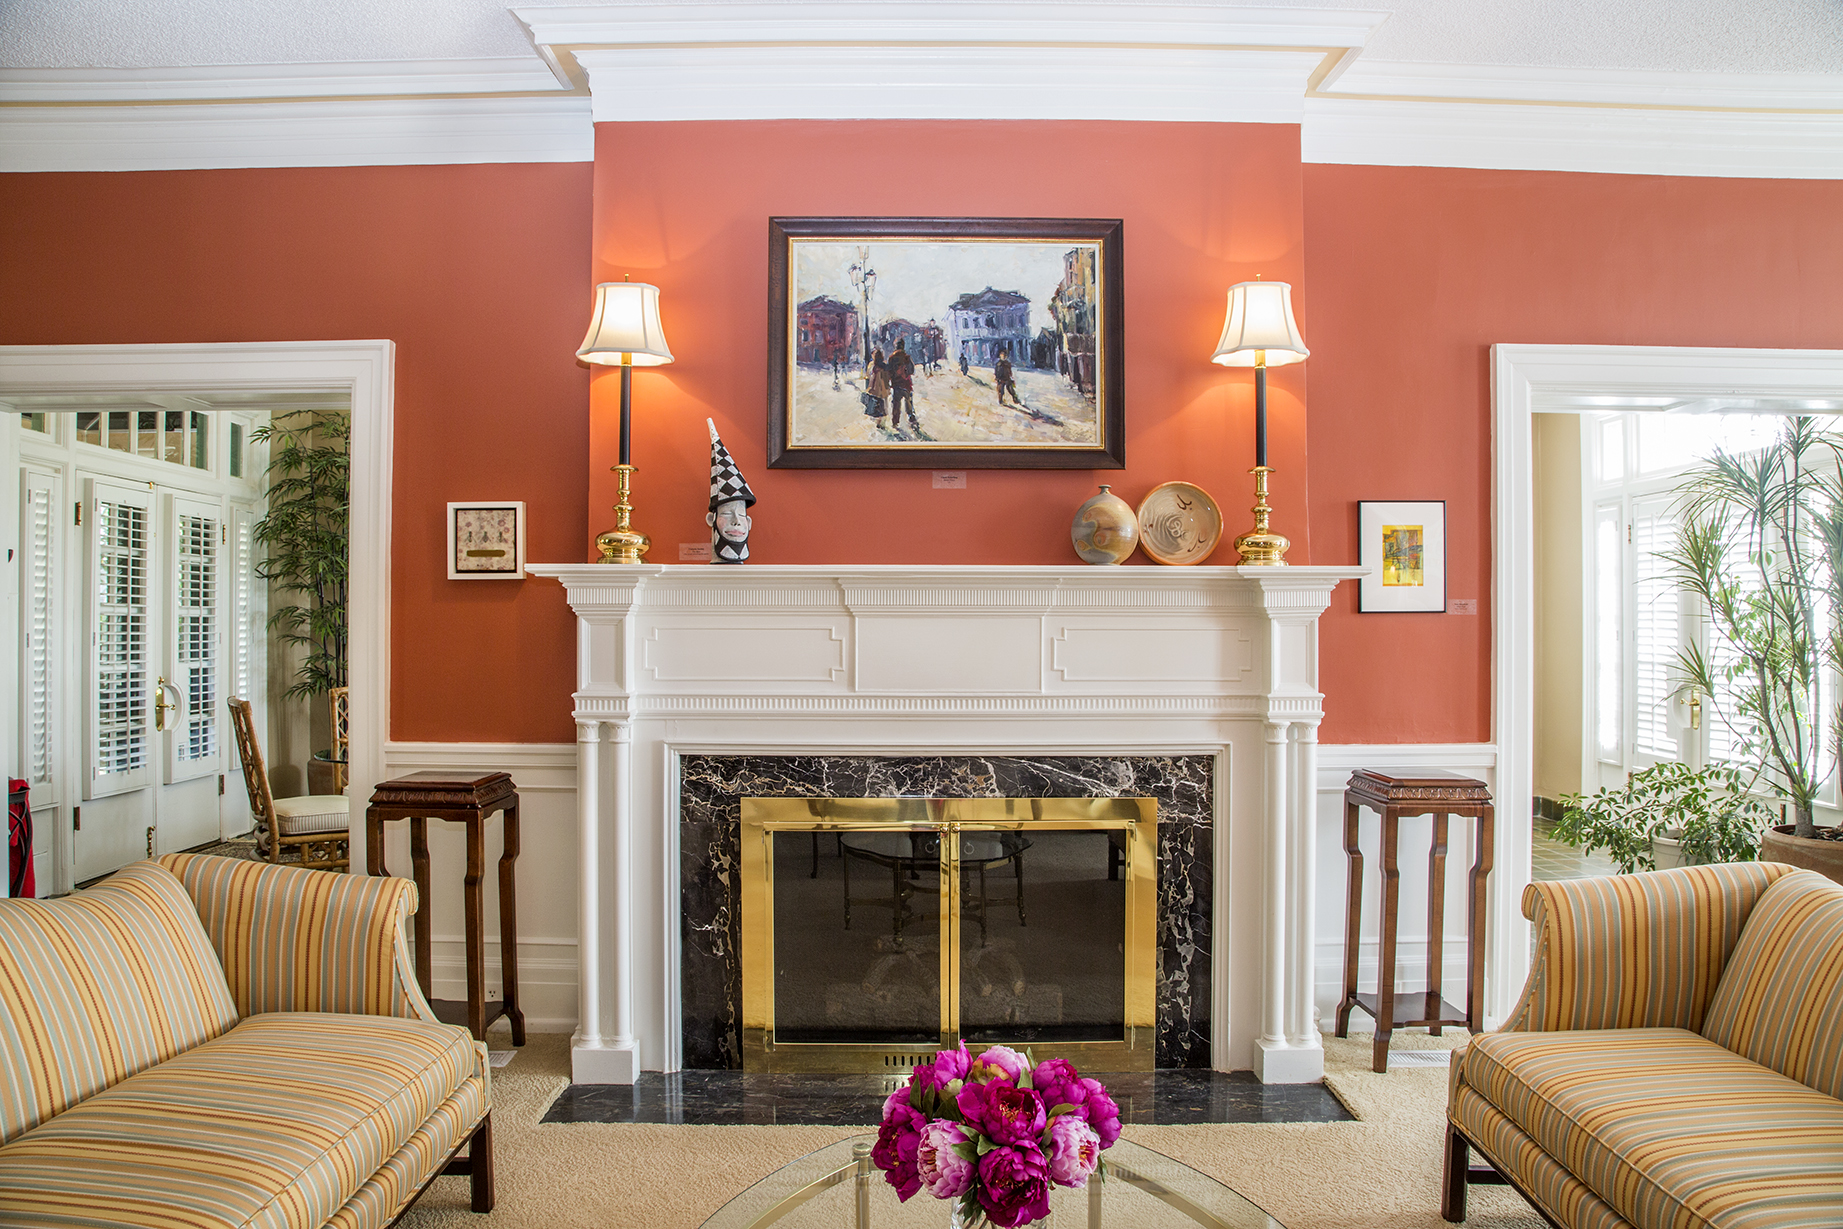 The mantel was handmade by Griffin Lumber Company of Goldsboro.